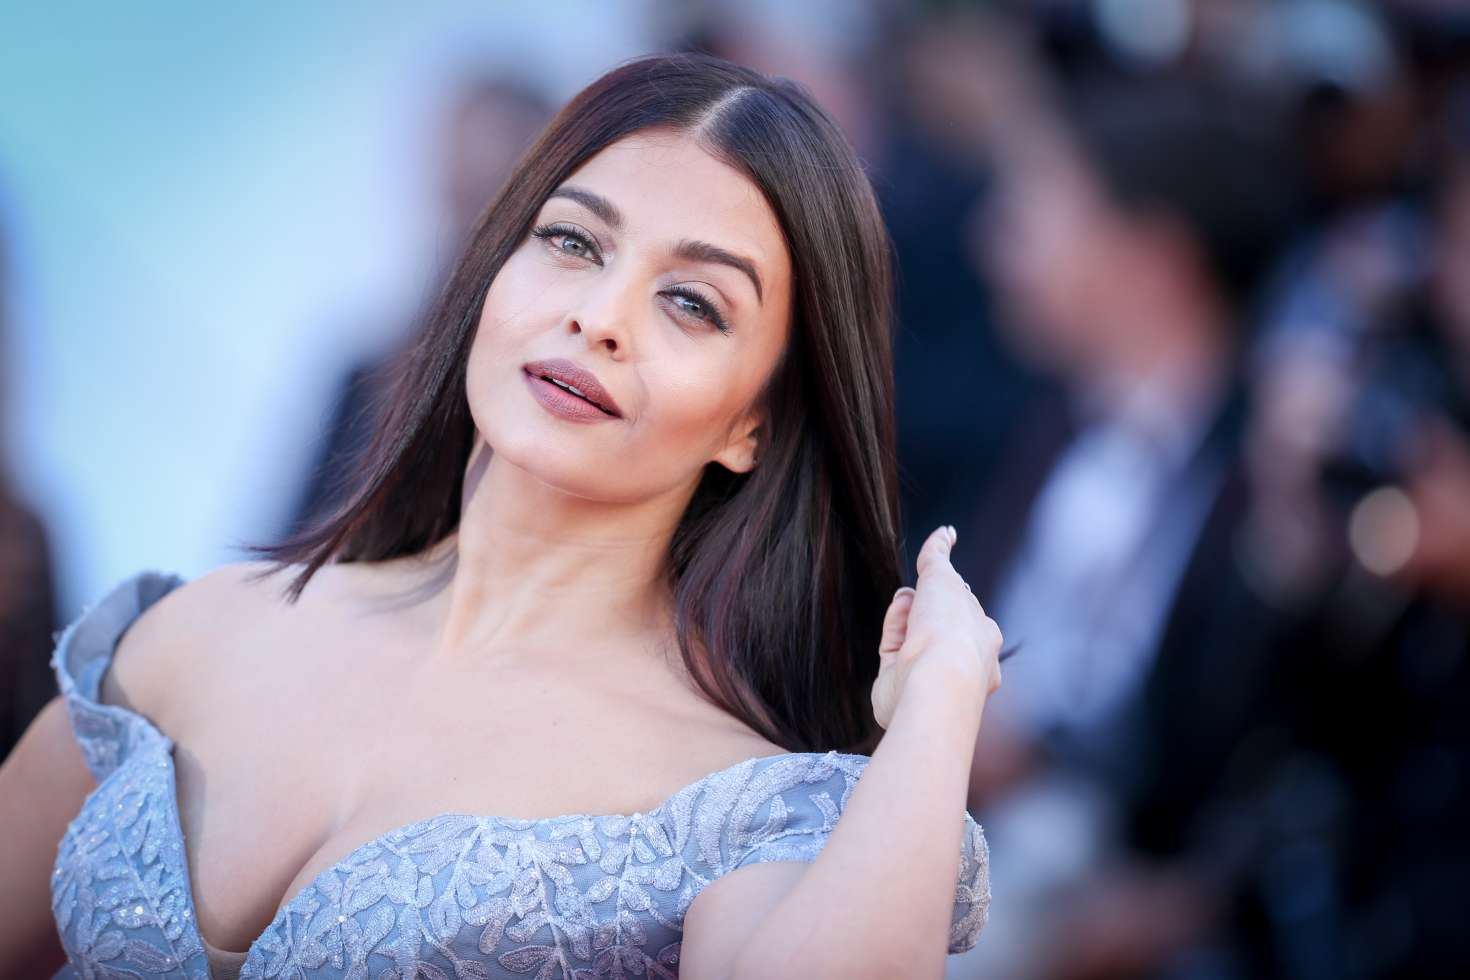 Aishwarya Rai Bachchan Looks Exquisite In These Latest Pics